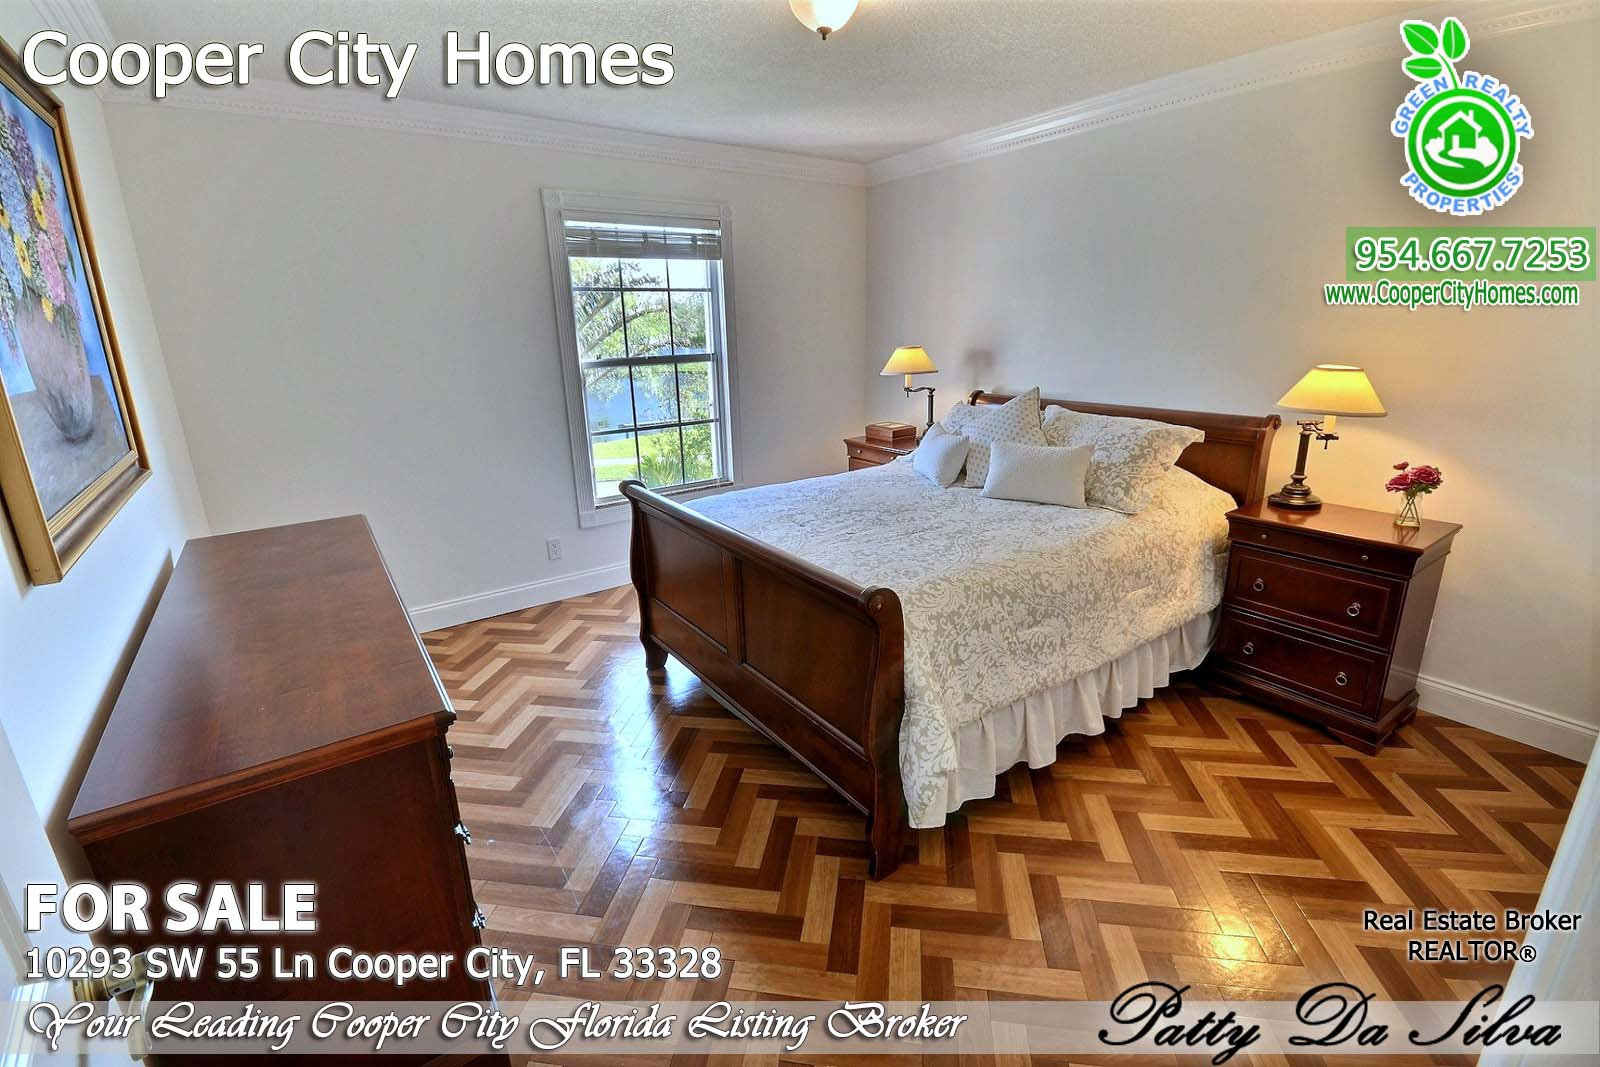 10293 - Cooper City Homes For Sale (24)